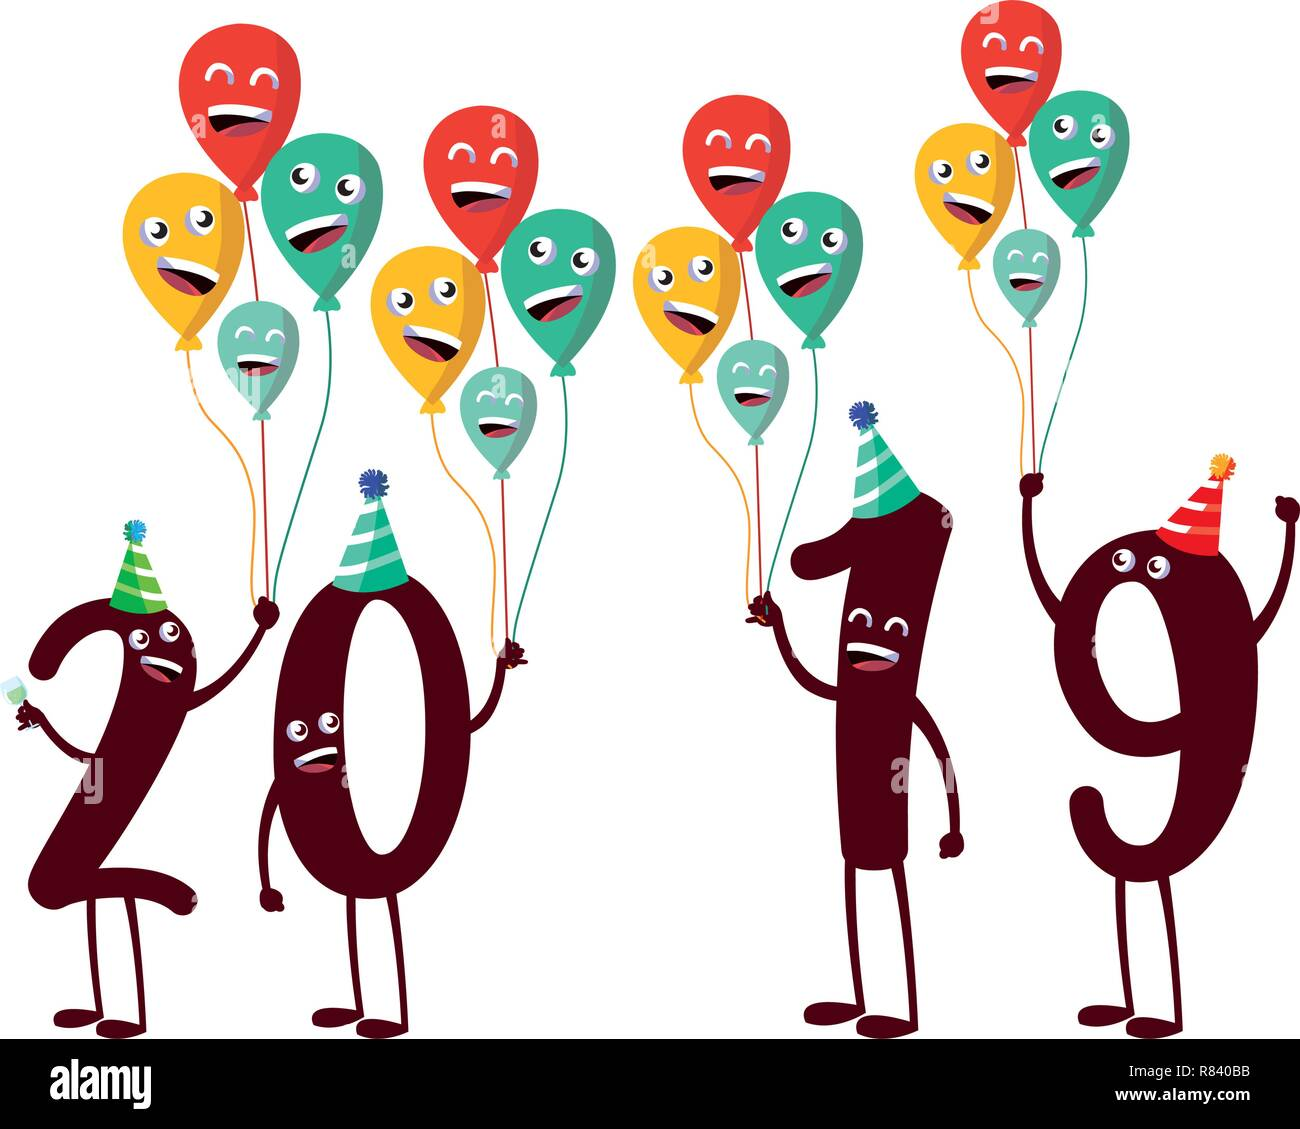 cartoon 2019 numbers and balloons over white background, colorful design, vector illustration Stock Vector